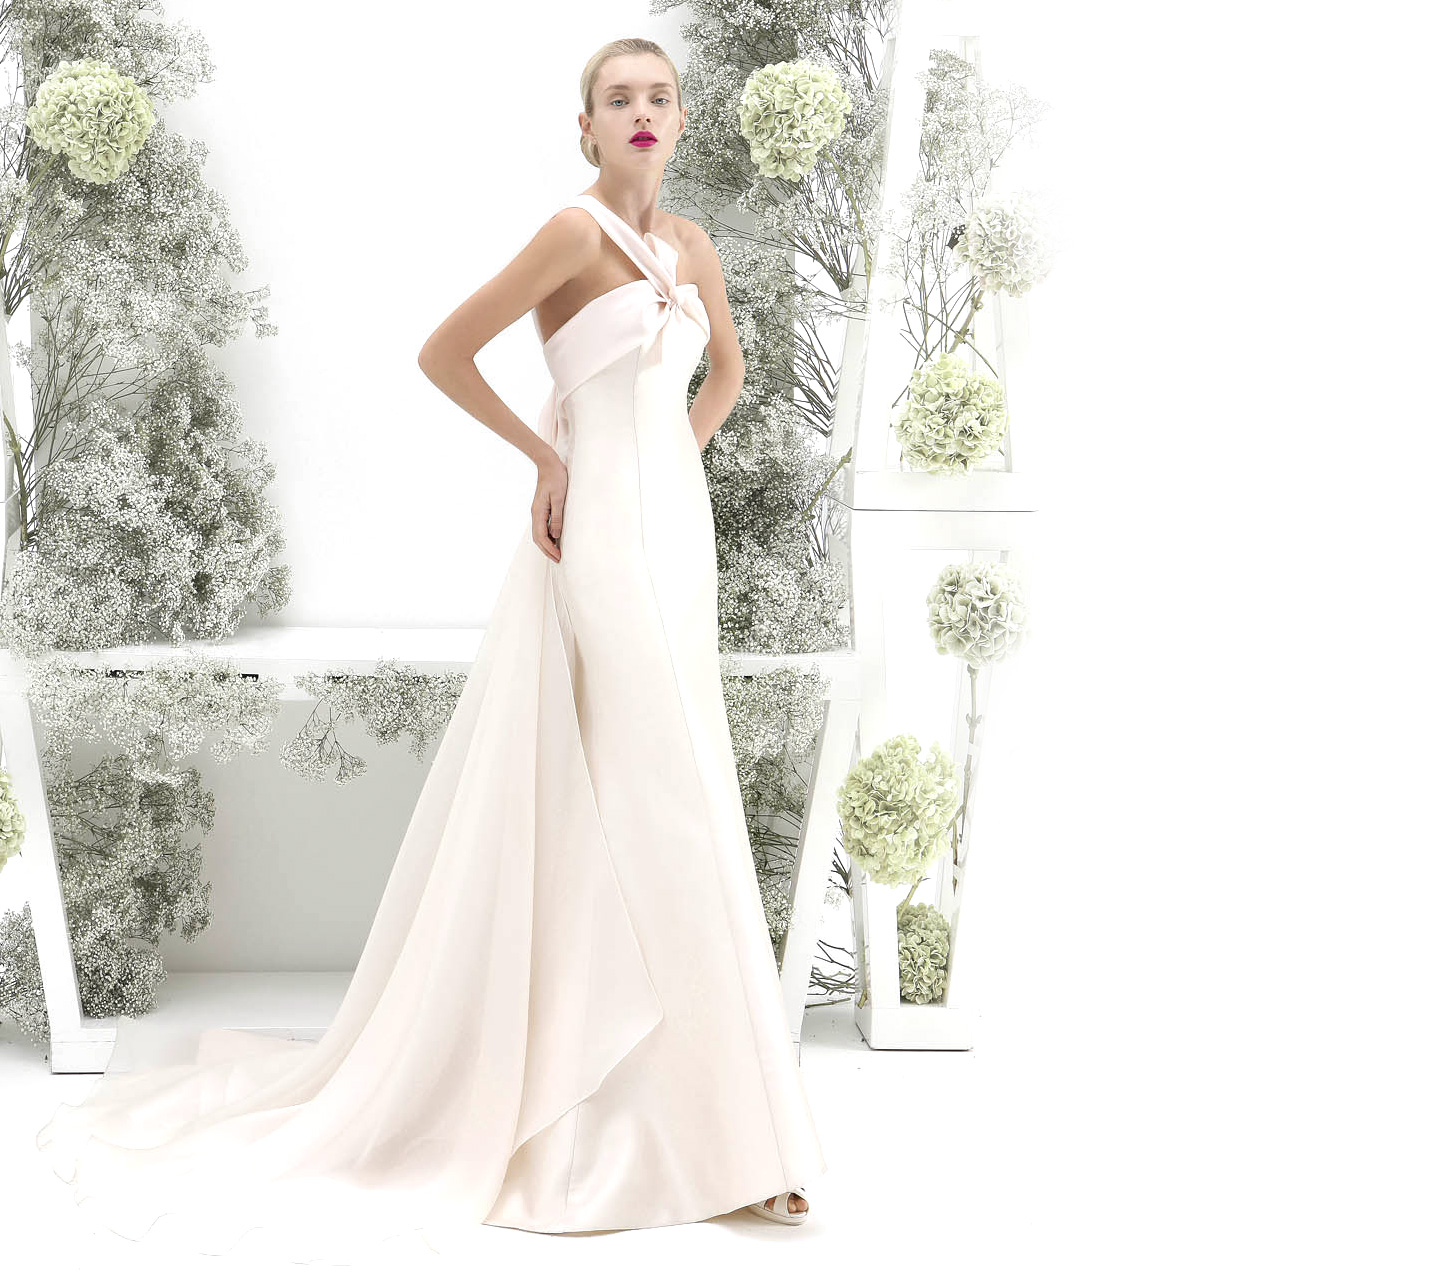 classy style wedding dresses collection from anna ceruti 3 classy wedding dresses Classy Style Wedding Dresses Collection from Anna Ceruti 3